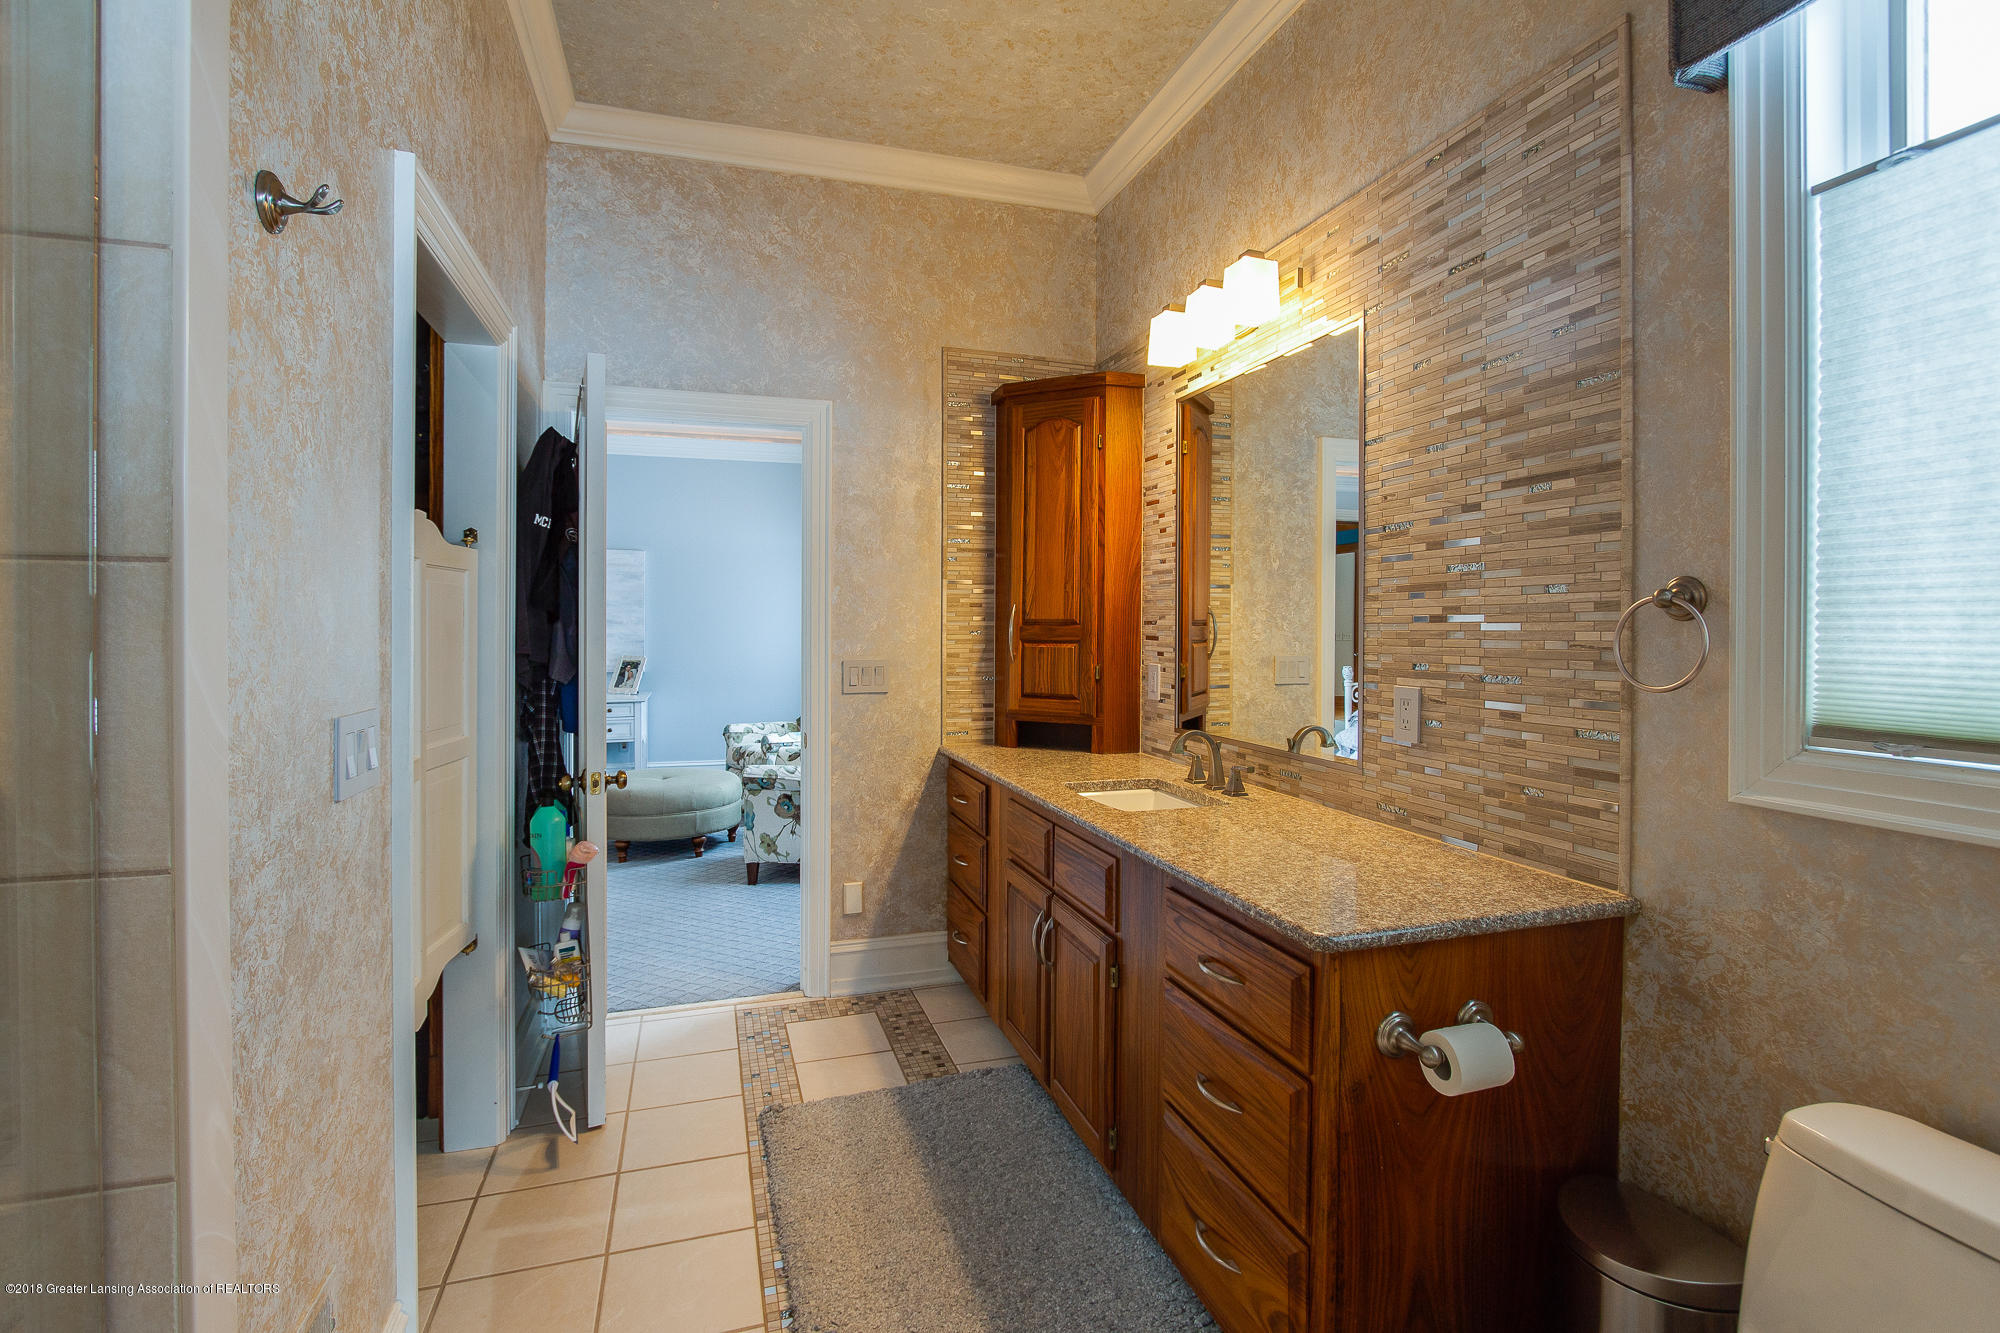 1101 Cherry Valle Ln - 1101_Cherry_Valle_JEFF-130 - 33